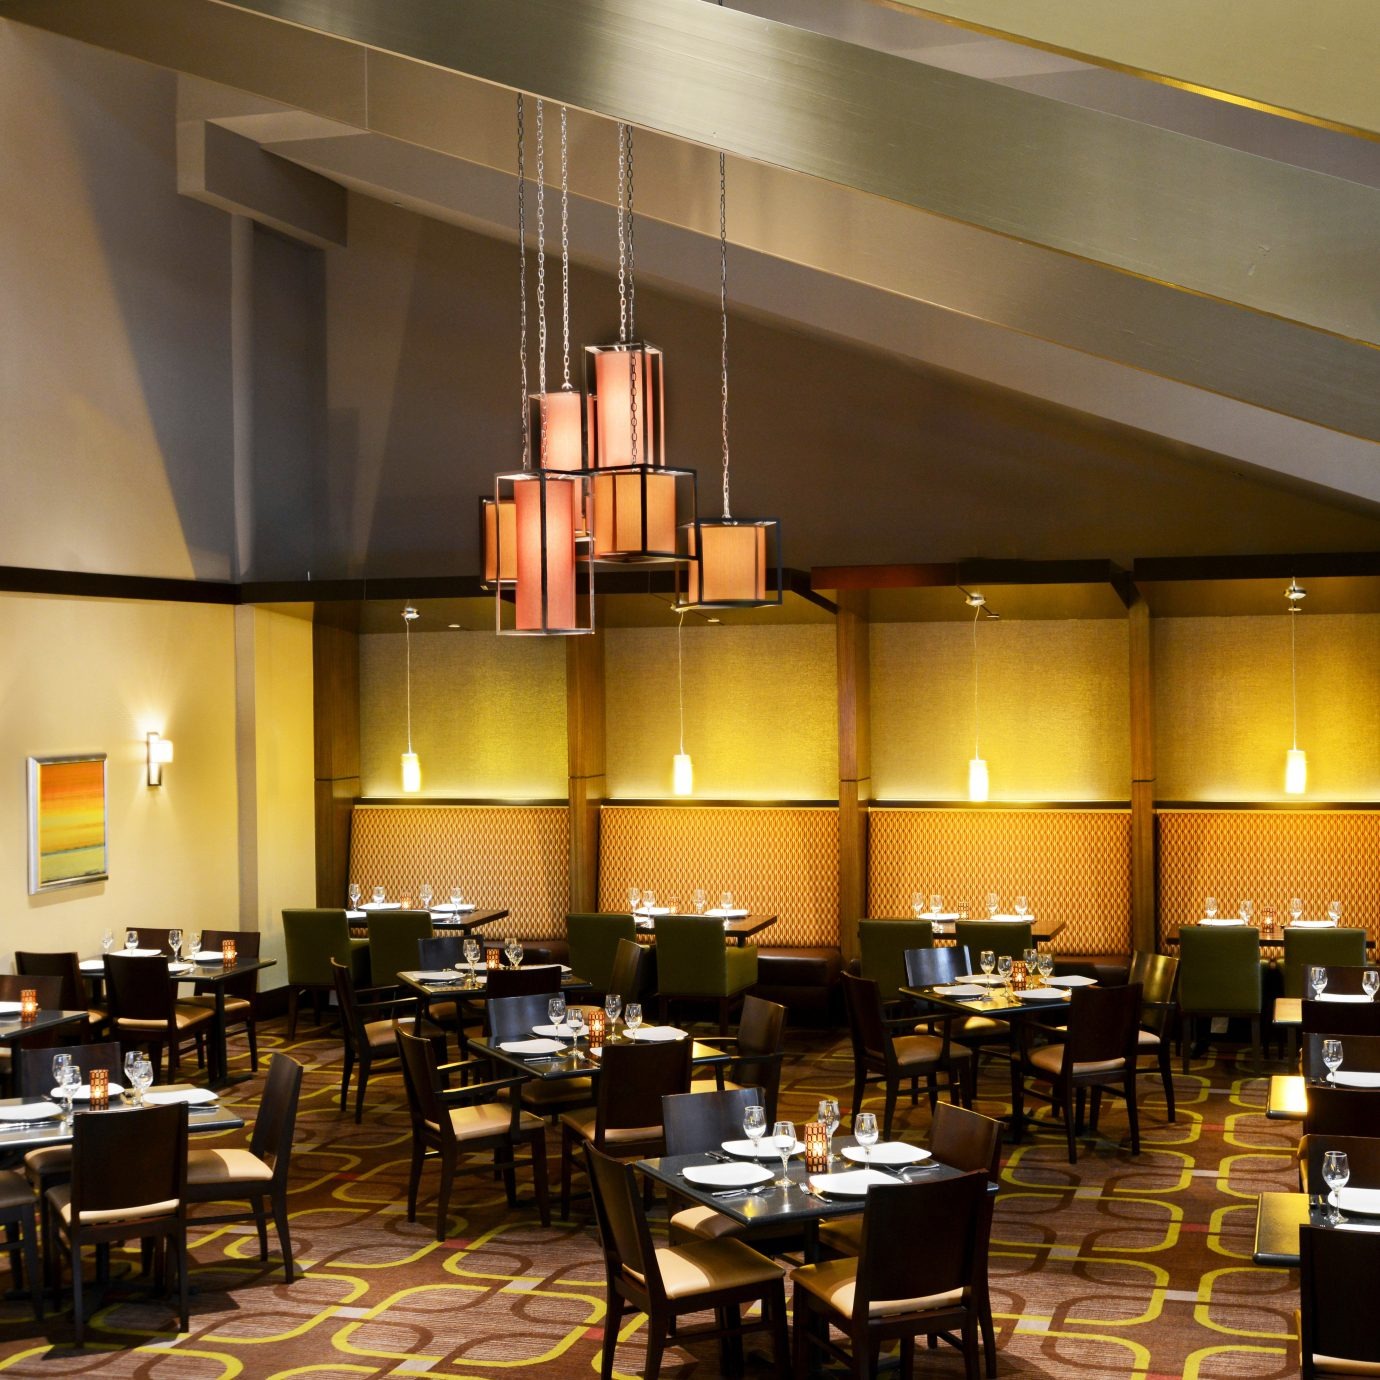 Dining Drink Eat function hall restaurant auditorium conference hall convention center cafeteria café Lobby ballroom